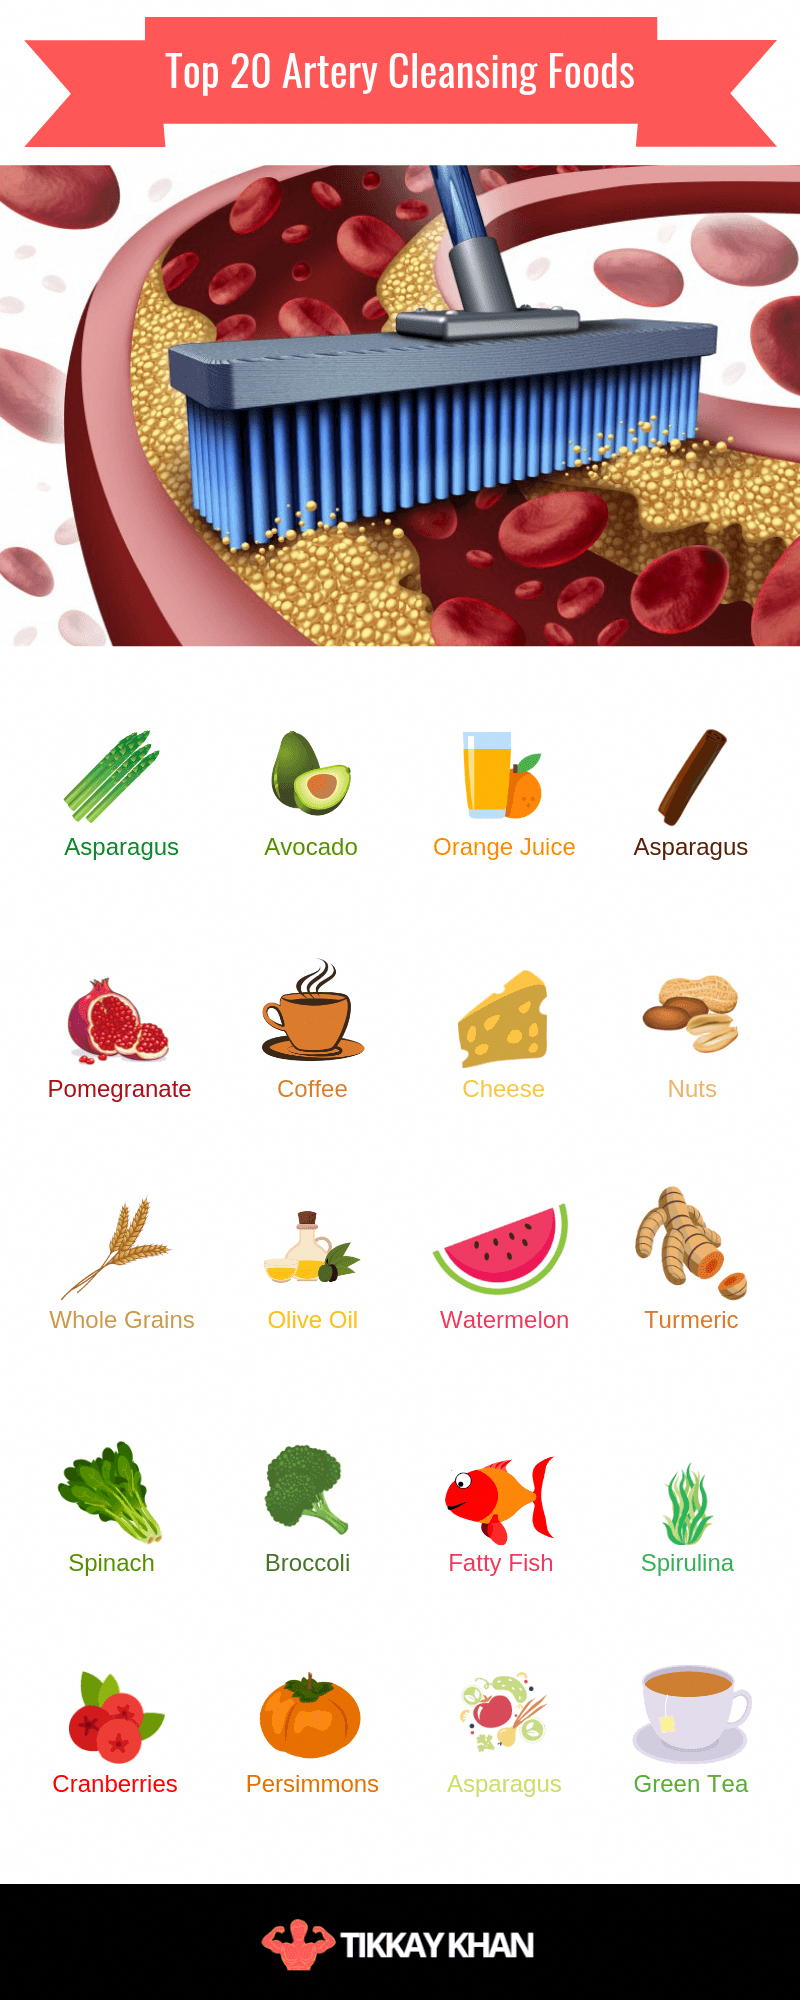 Top 20 Artery Cleansing Foods And Juices For Artery Cleanse Arterycleansingfoods Arterycleansingfoodshe In 2020 Cleanse Recipes Artery Cleanse Healthy Drinks Detox